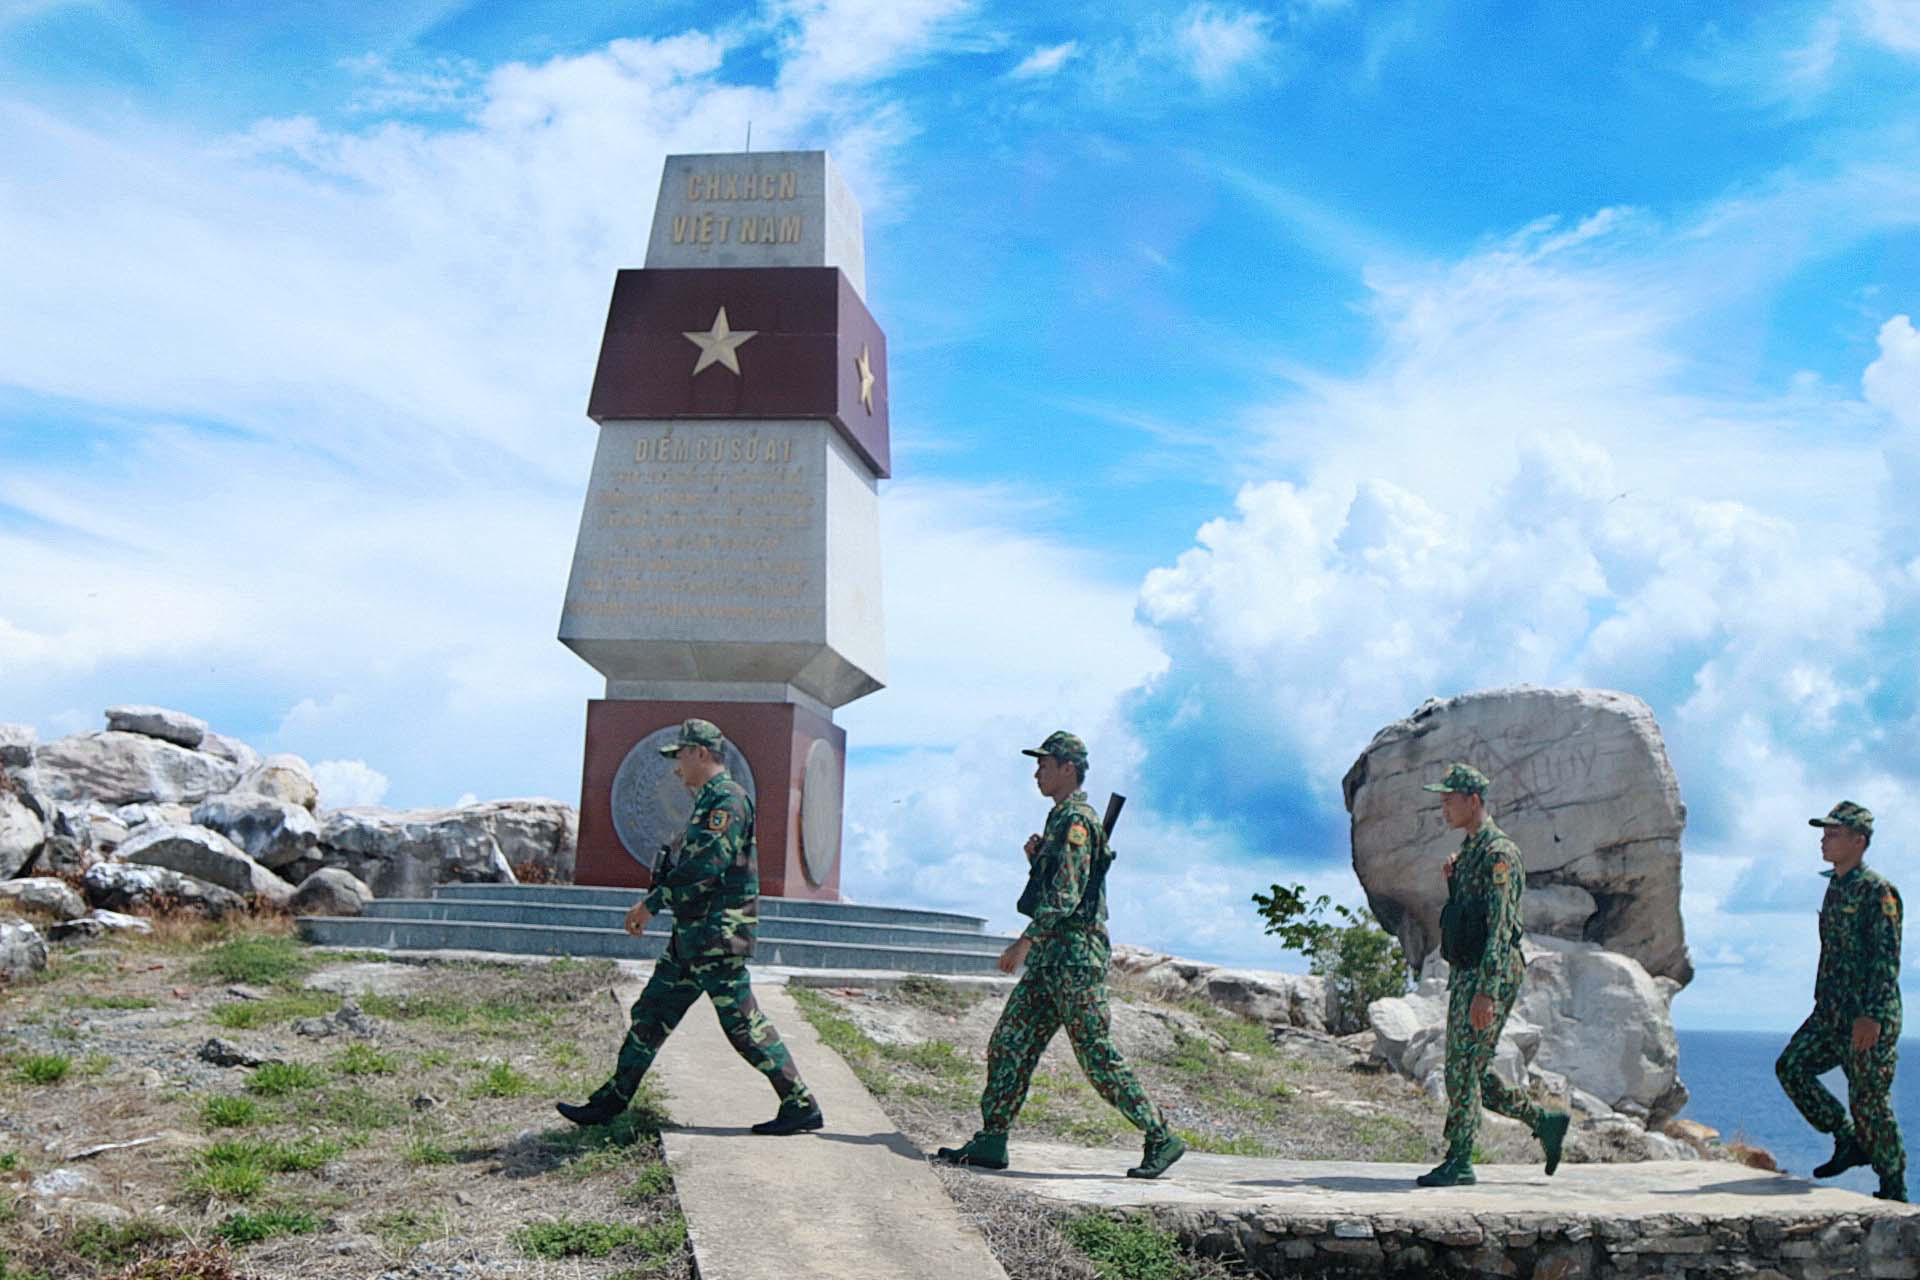 <em>Border guards patrol the A1 point, a landmark of the Vietnamese territorial sea baseline on Hon Nhan Island, a part of the Tho Chau archipelago off Kien Giang Province, Vietnam.</em>